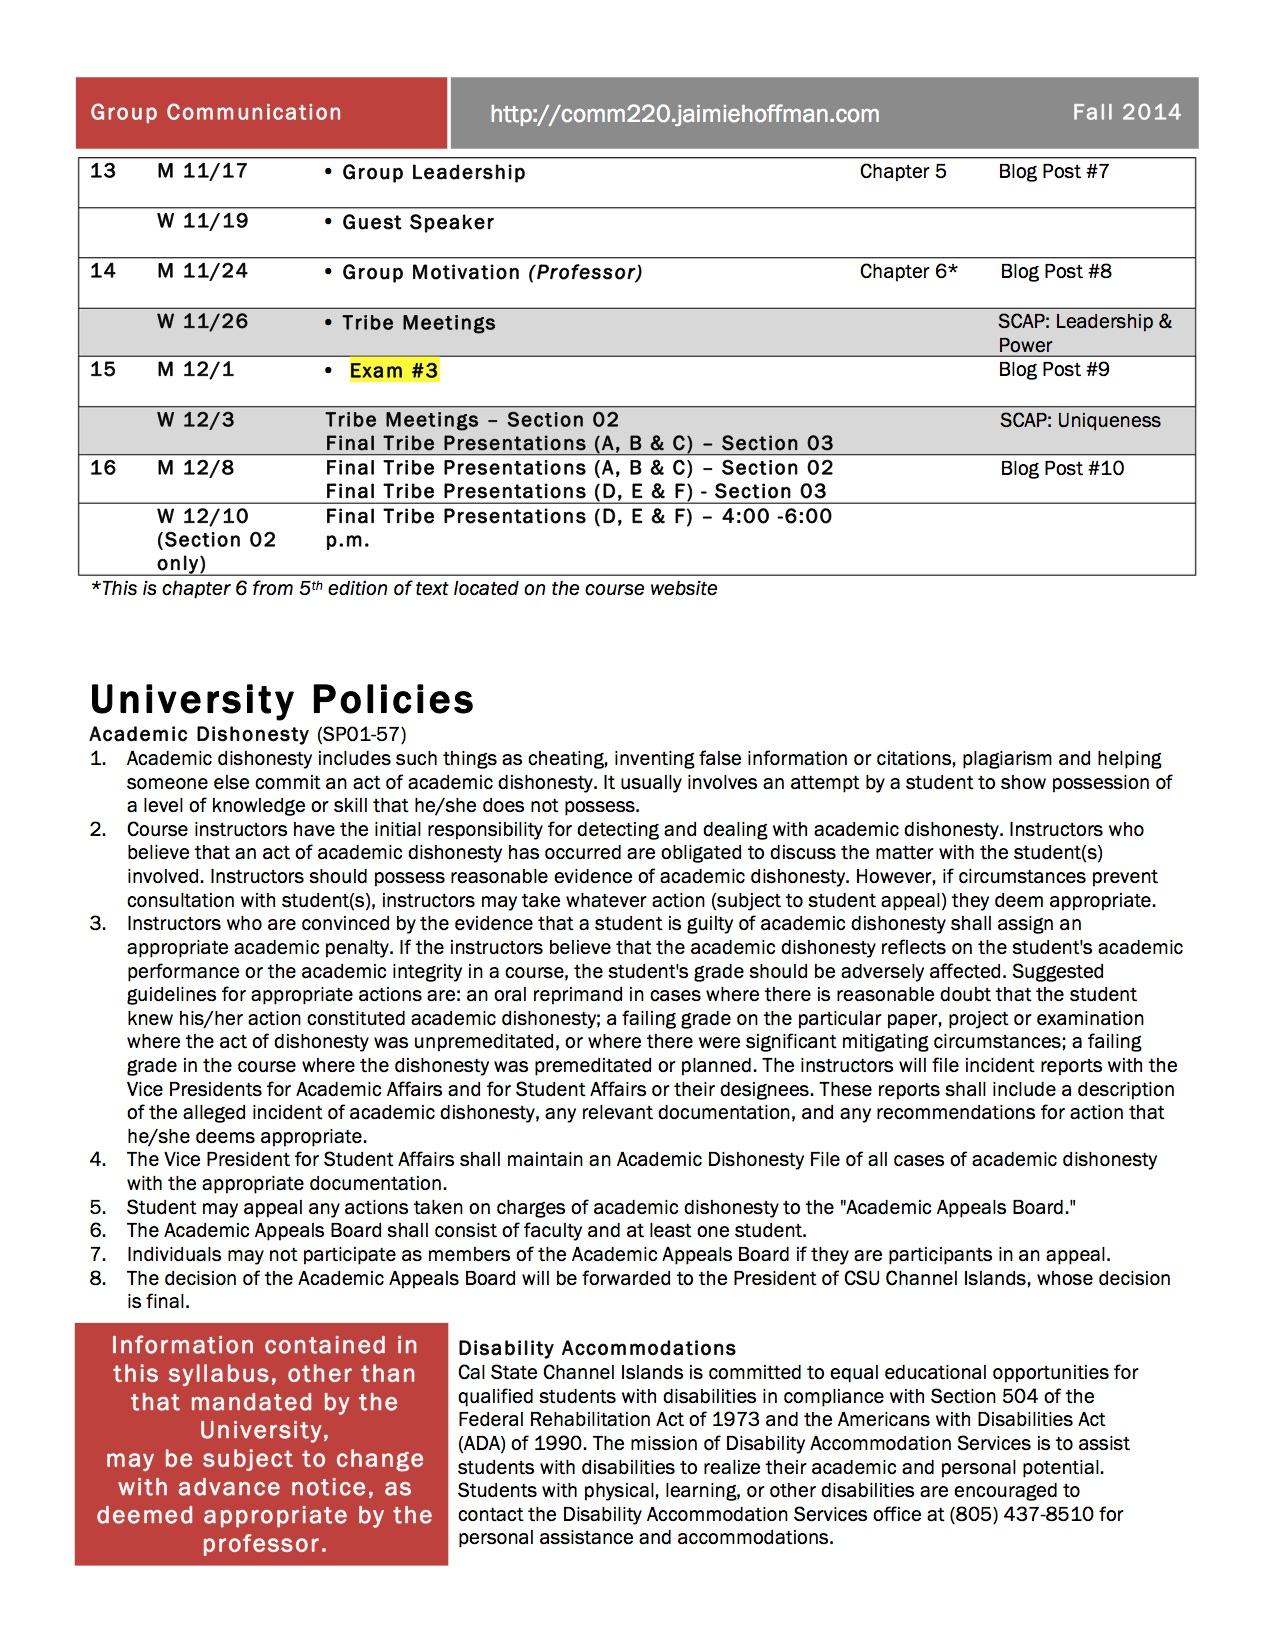 Page 7 Design_Course_Syllabus_Hoffman_COMM_220_Fall_2014